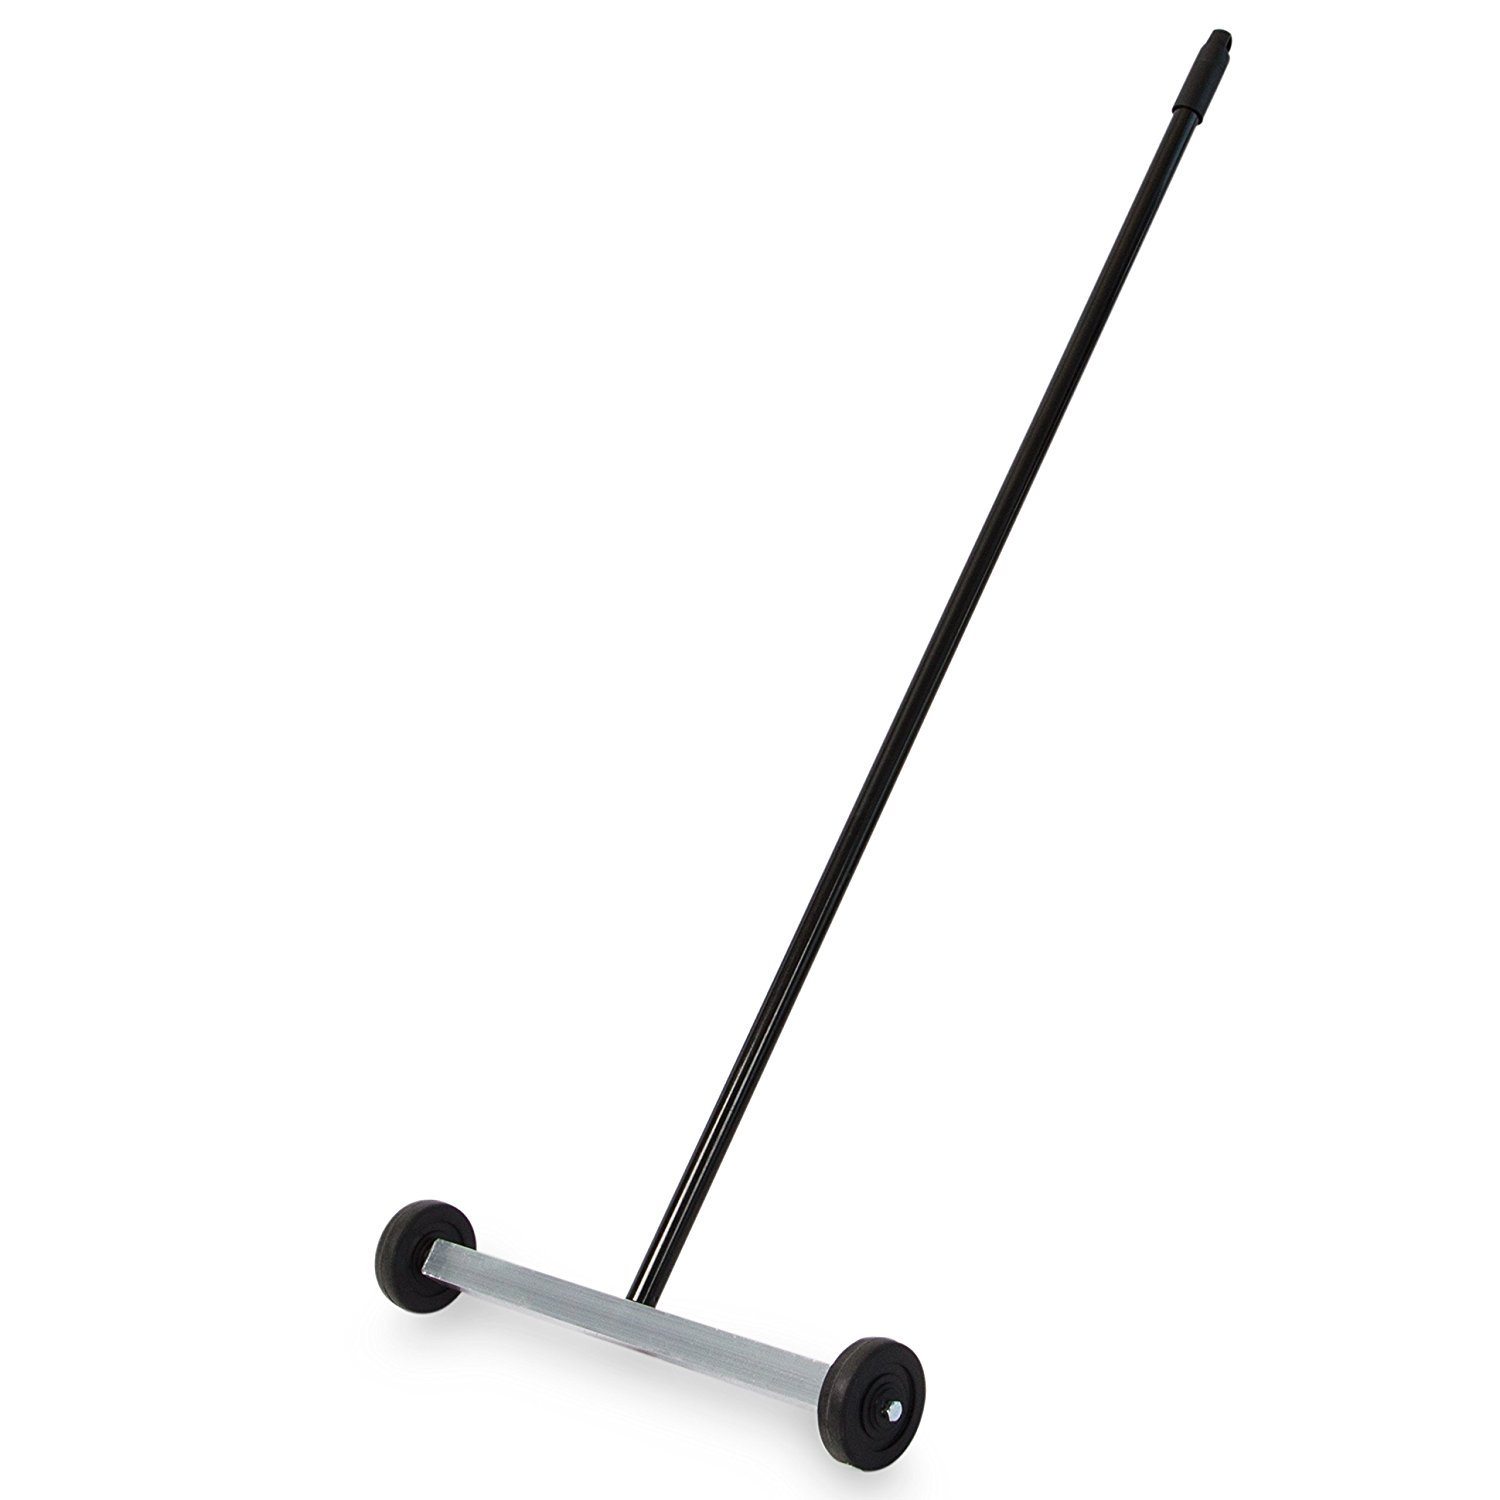 """Master Magnetics - Magnetic Sweeper with Wheels, 14.5"""" - Pick up Nails, Needles, Screws and More 07263 (Pack of 4) by Master Magnetics (Image #2)"""